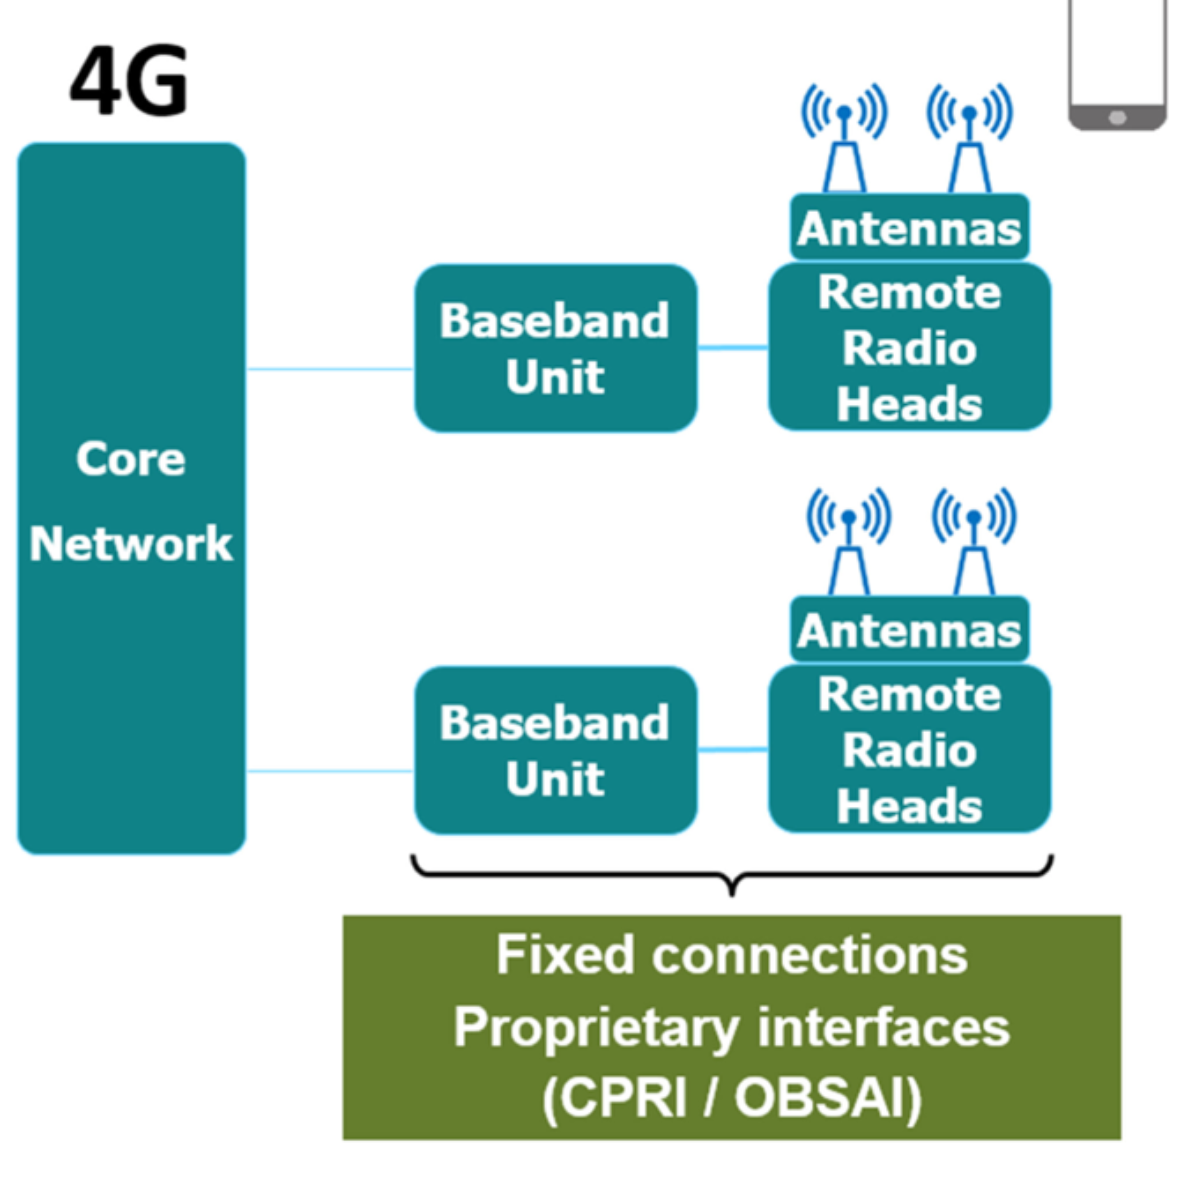 Simplified 4G network